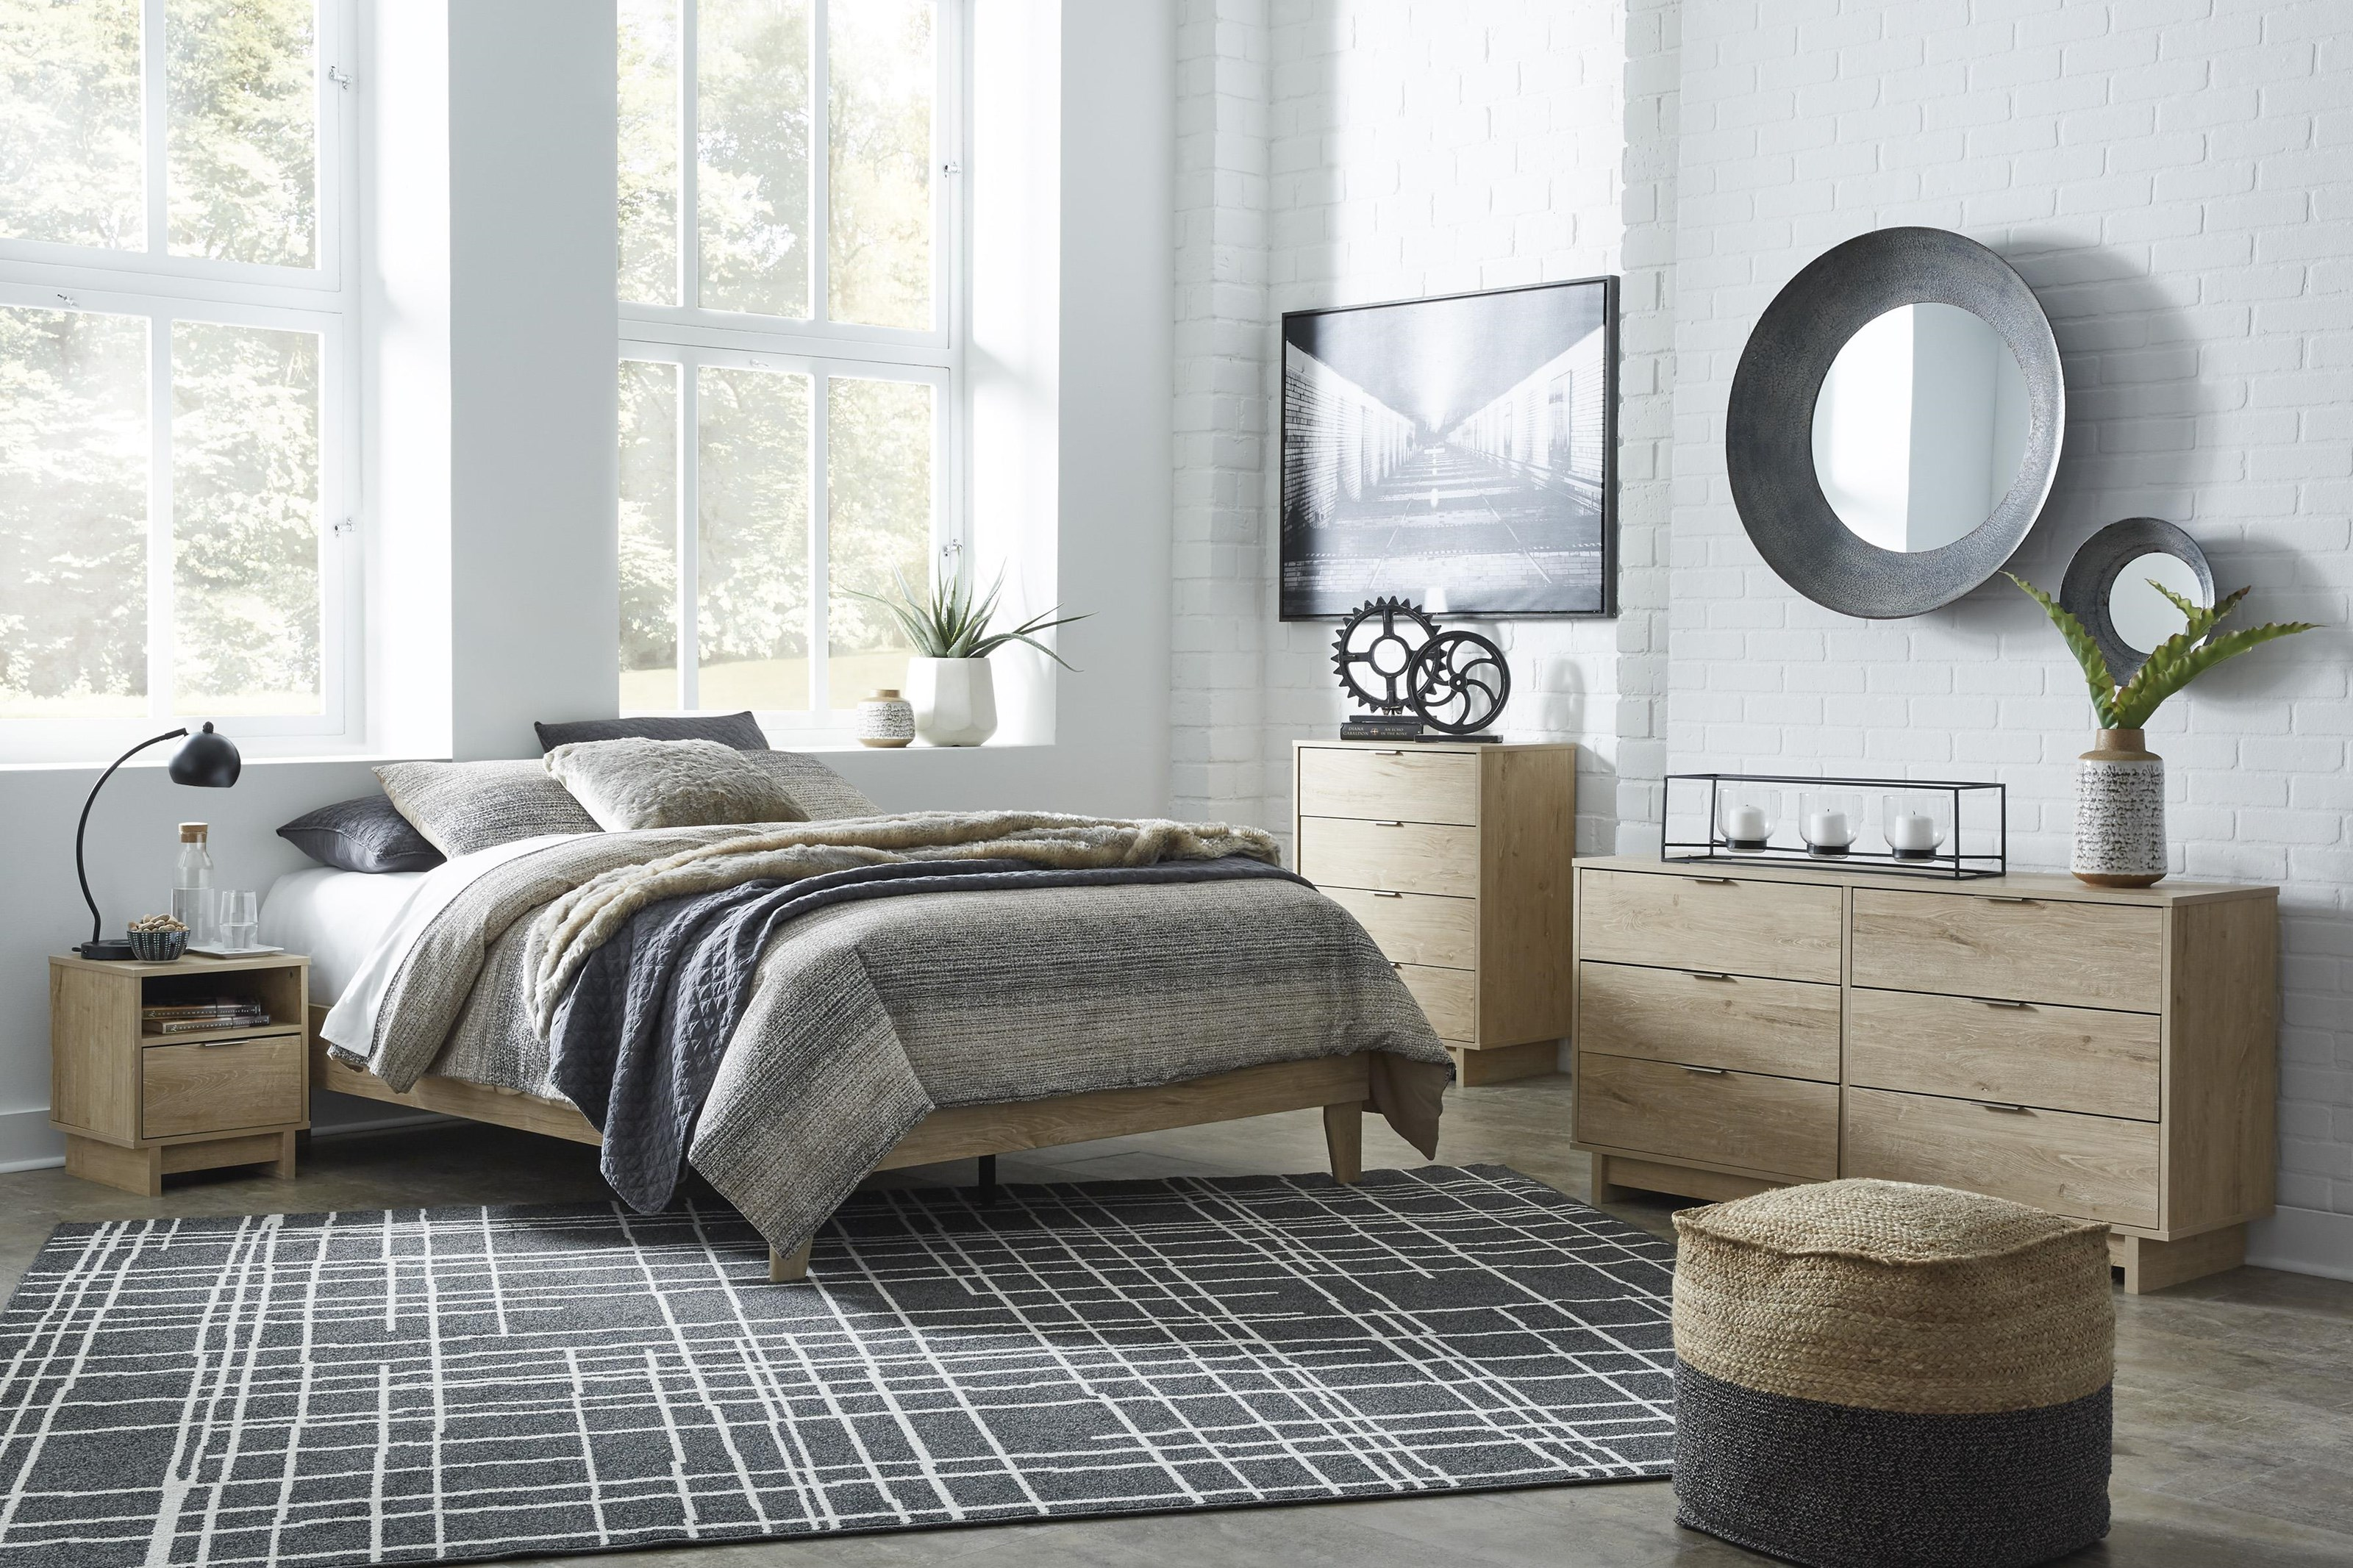 Oliah 3 Piece Queen Bedroom Set by Signature Design by Ashley at Sam Levitz Furniture